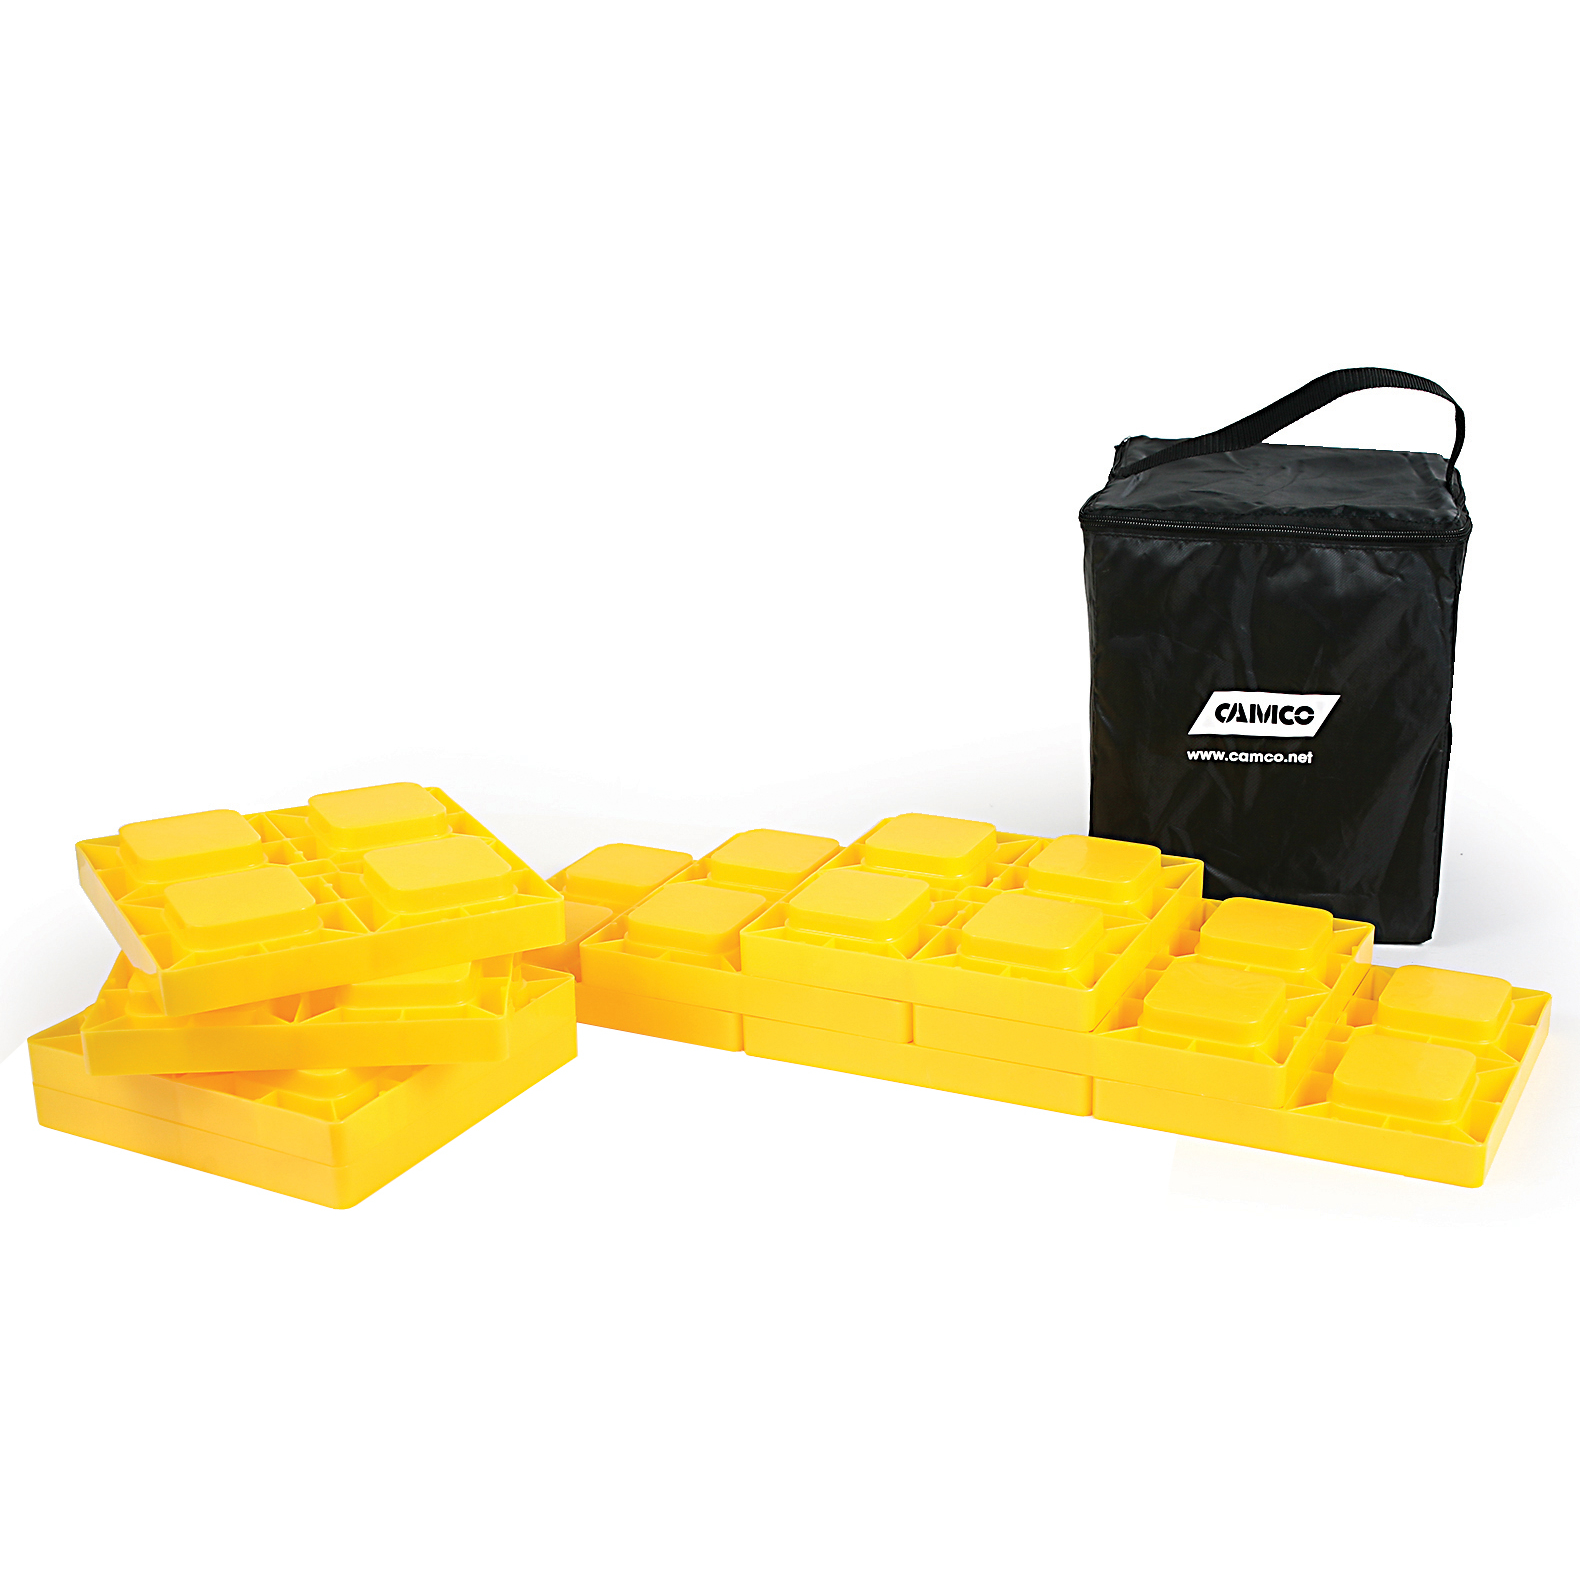 Camco Heavy Duty Leveling Blocks (10-pack) at Walmart